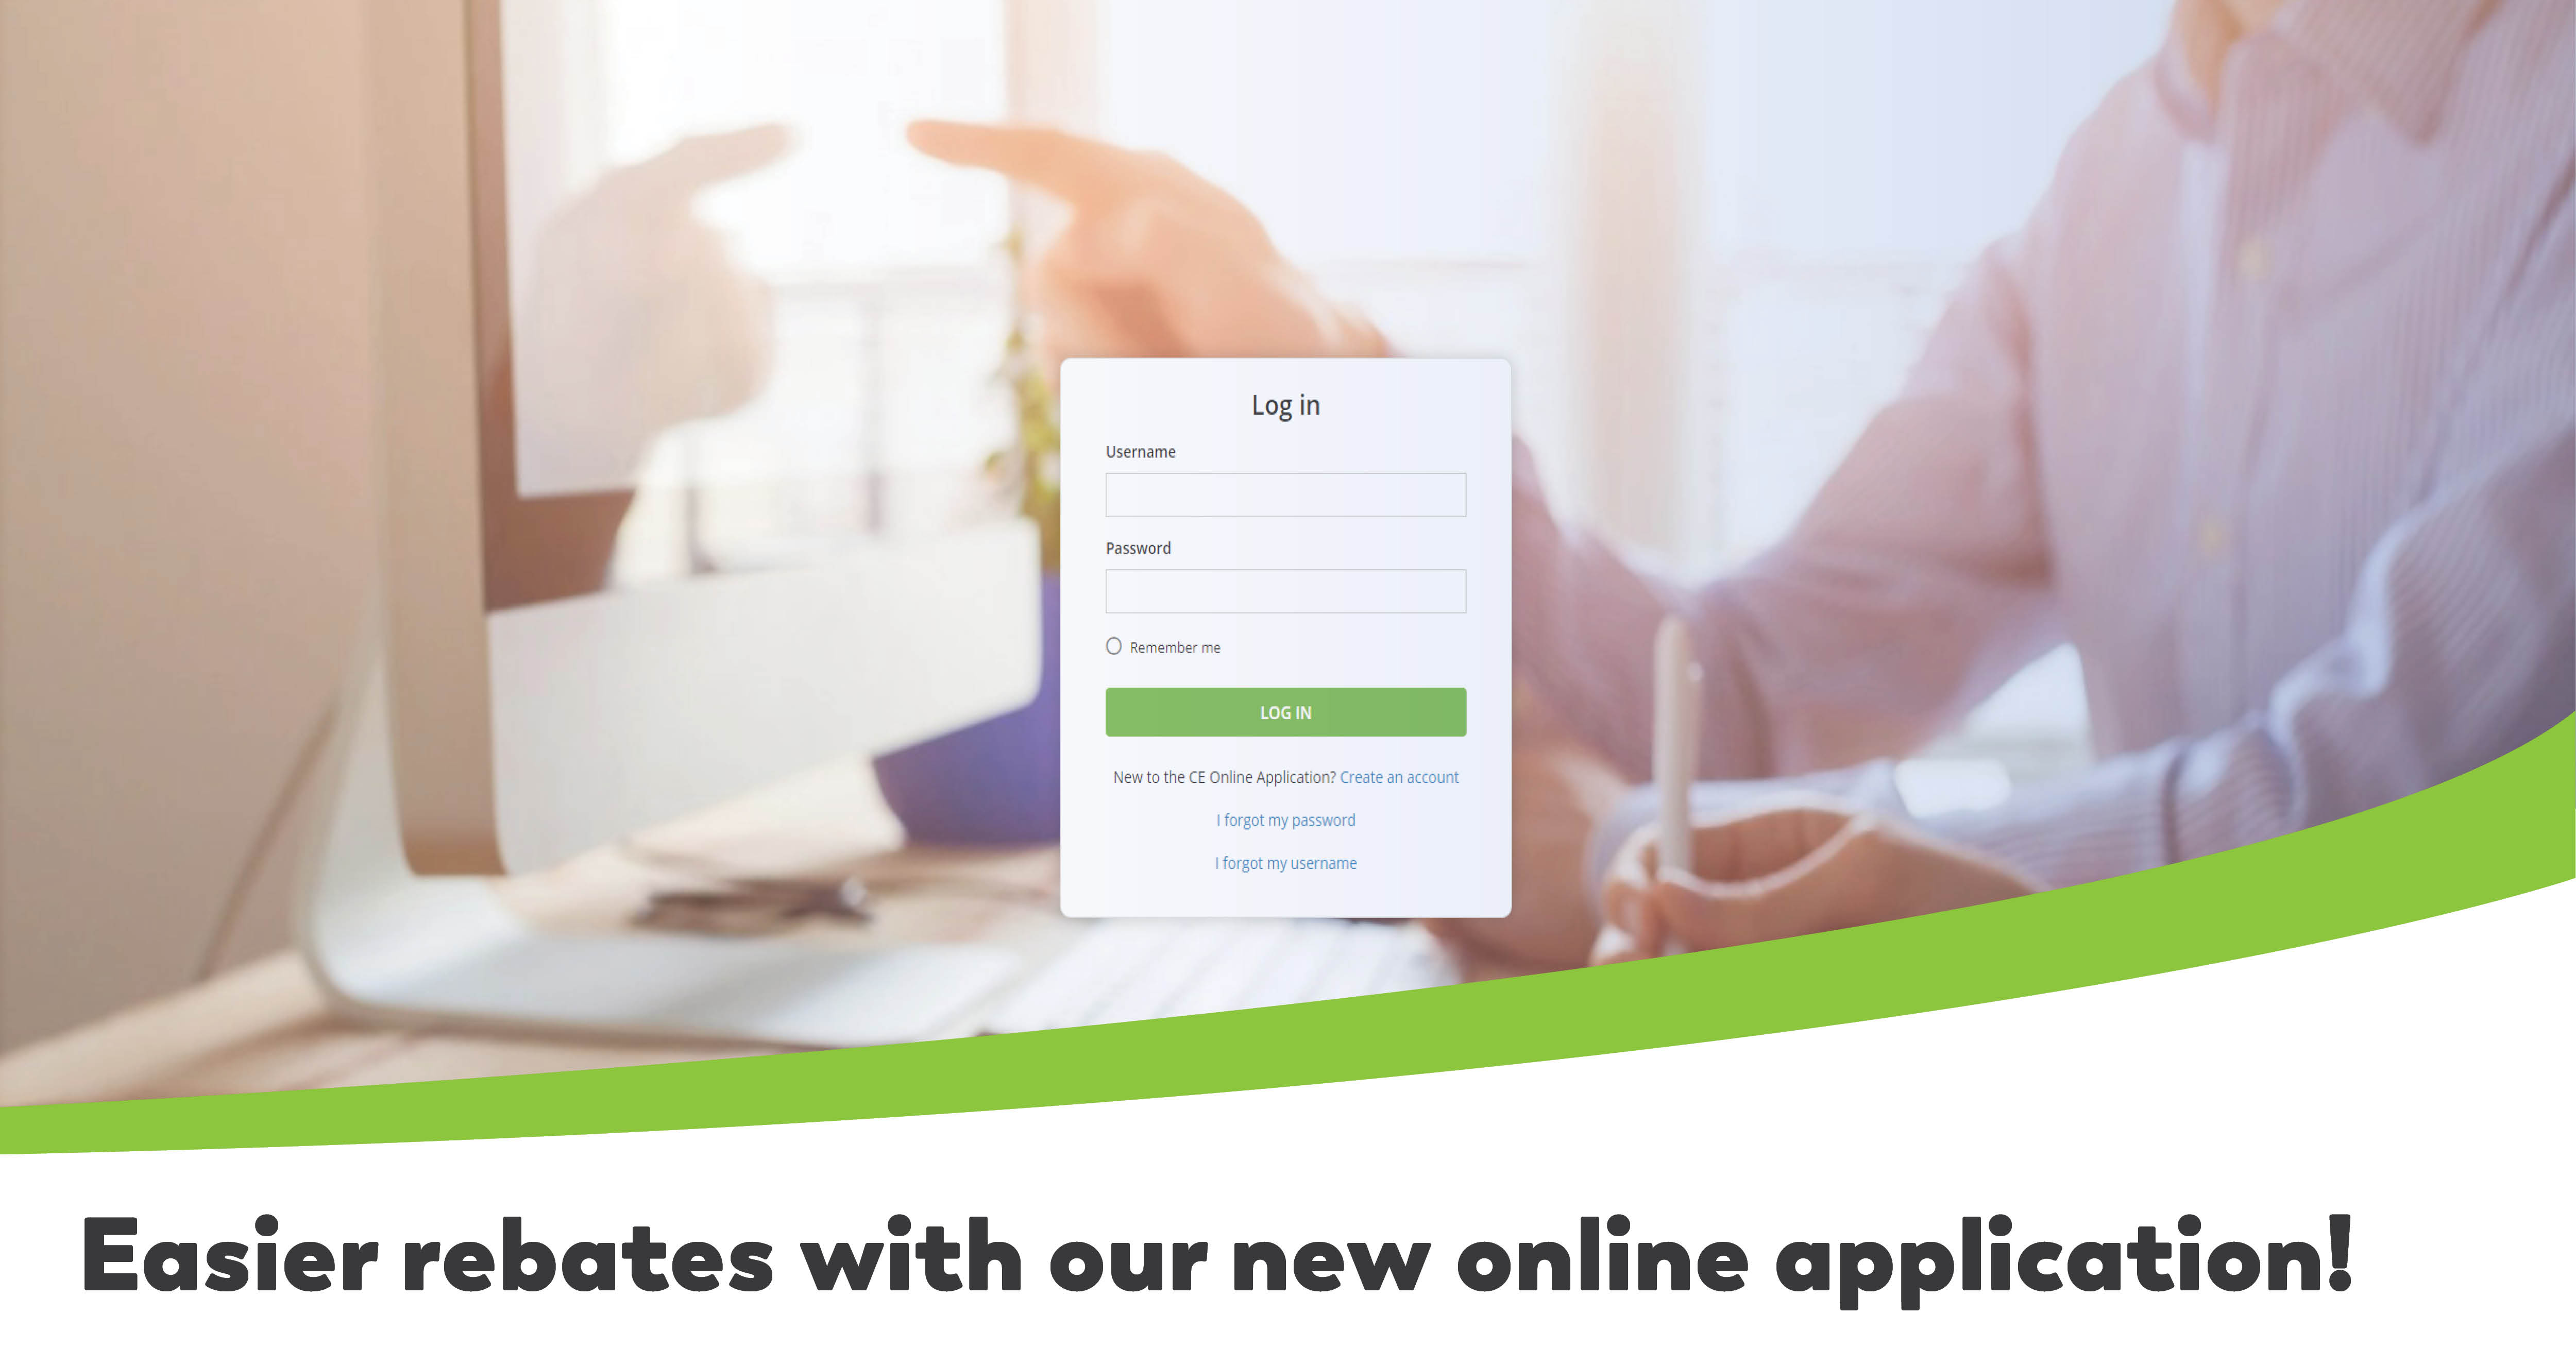 New Online Application